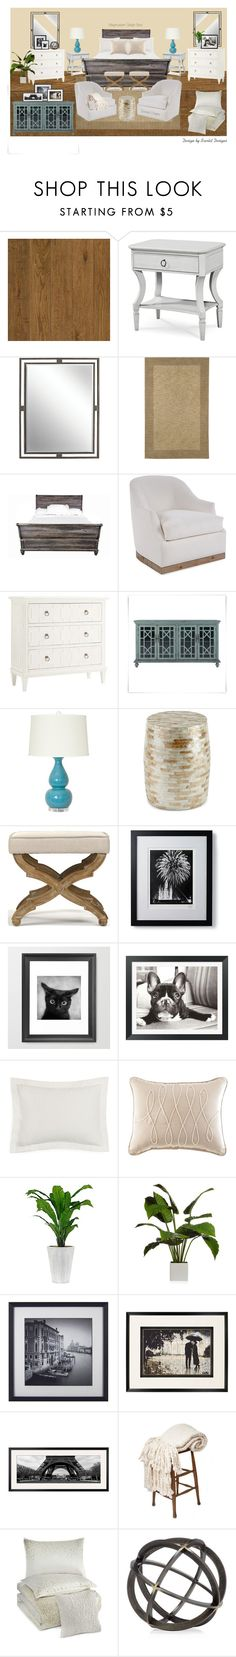 """""""Master"""" by scarlet-designs on Polyvore featuring interior, interiors, interior design, home, home decor, interior decorating, American Vintage, Kichler, Pier 1 Imports and Frontgate"""